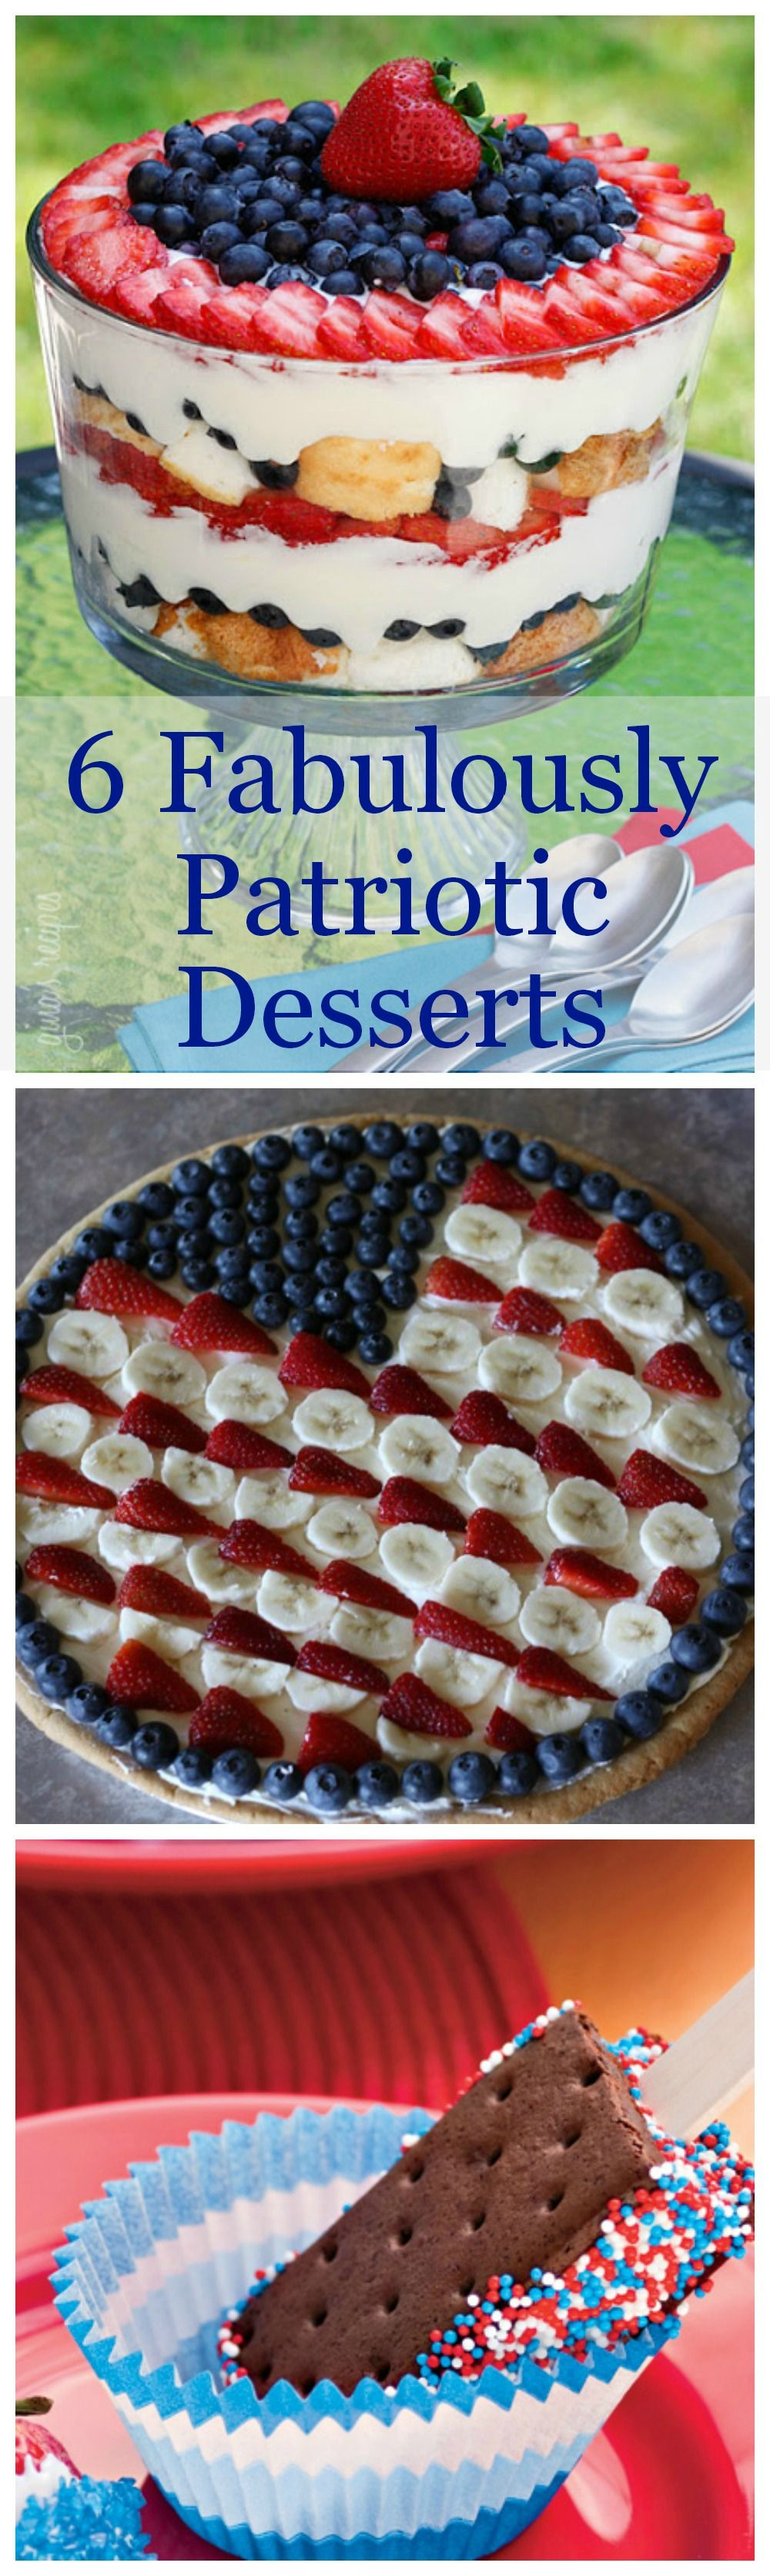 Quick And Easy 4th Of July Desserts Desserts Patriotic Desserts 4th Of July Desserts